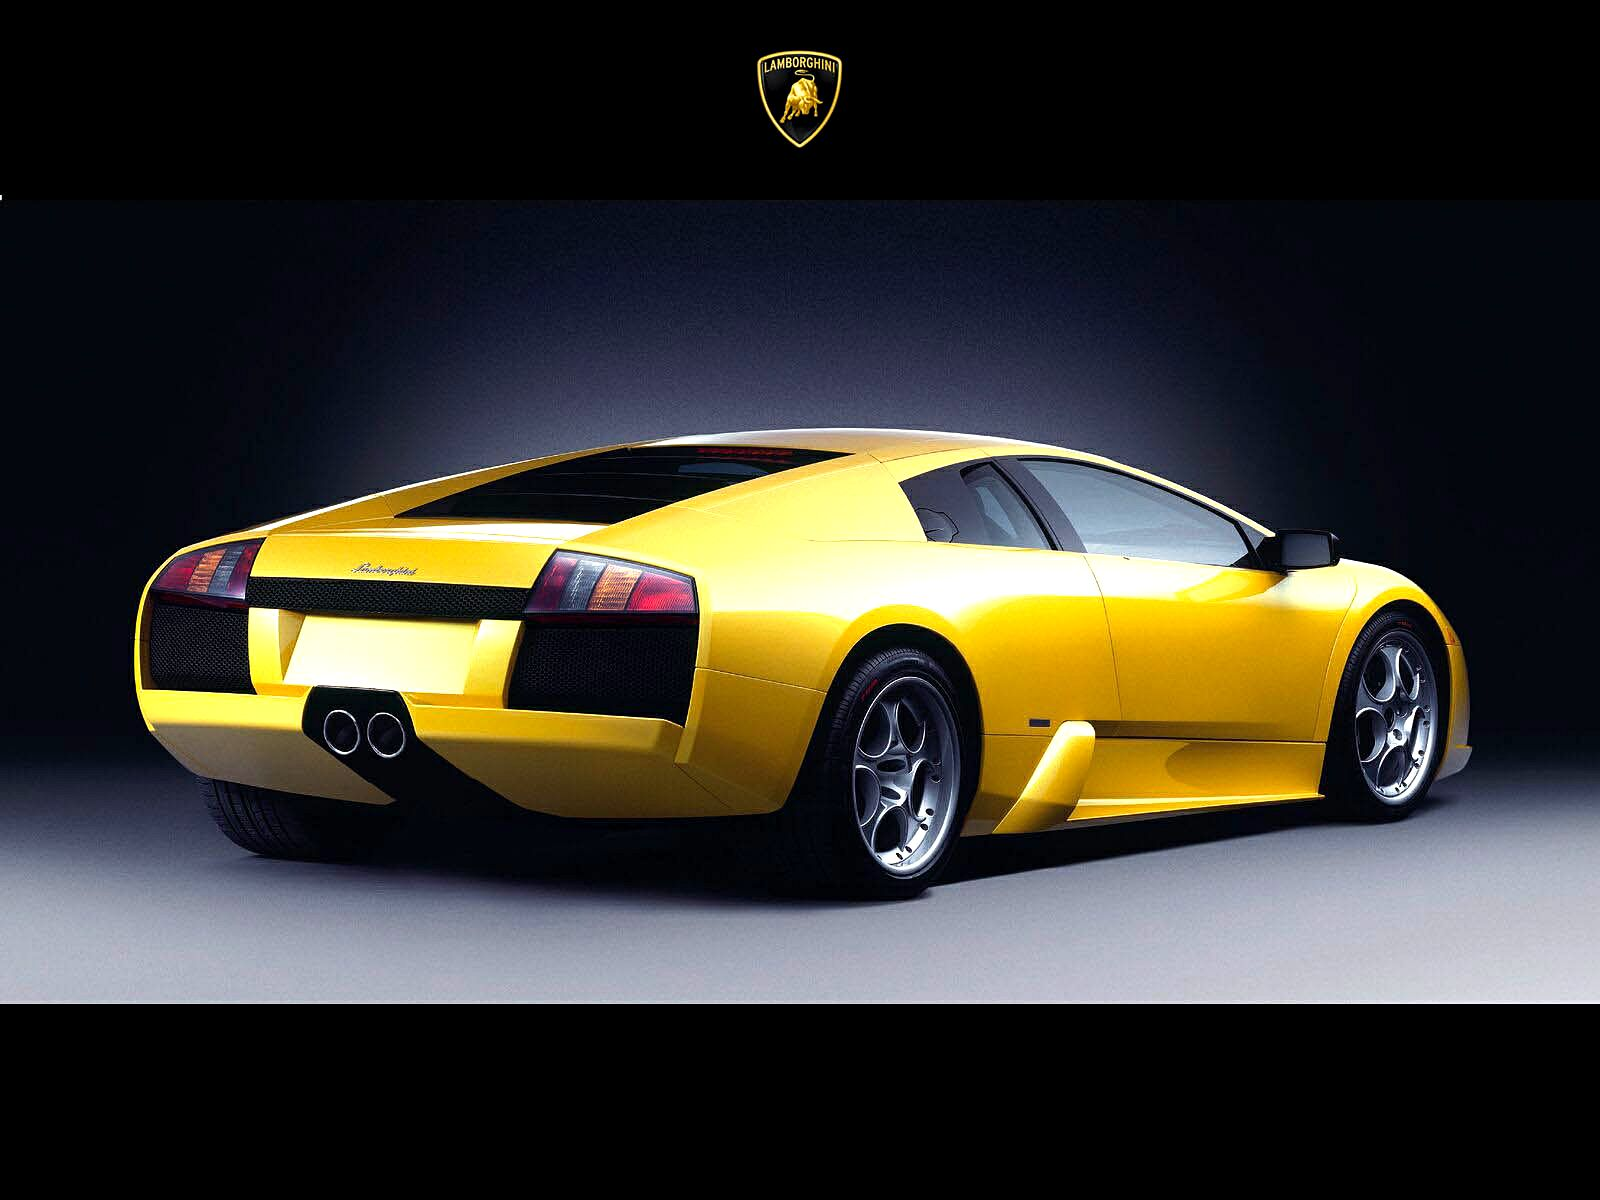 Hd Cool Car Wallpapers: lamborghini murcielago wallpaper